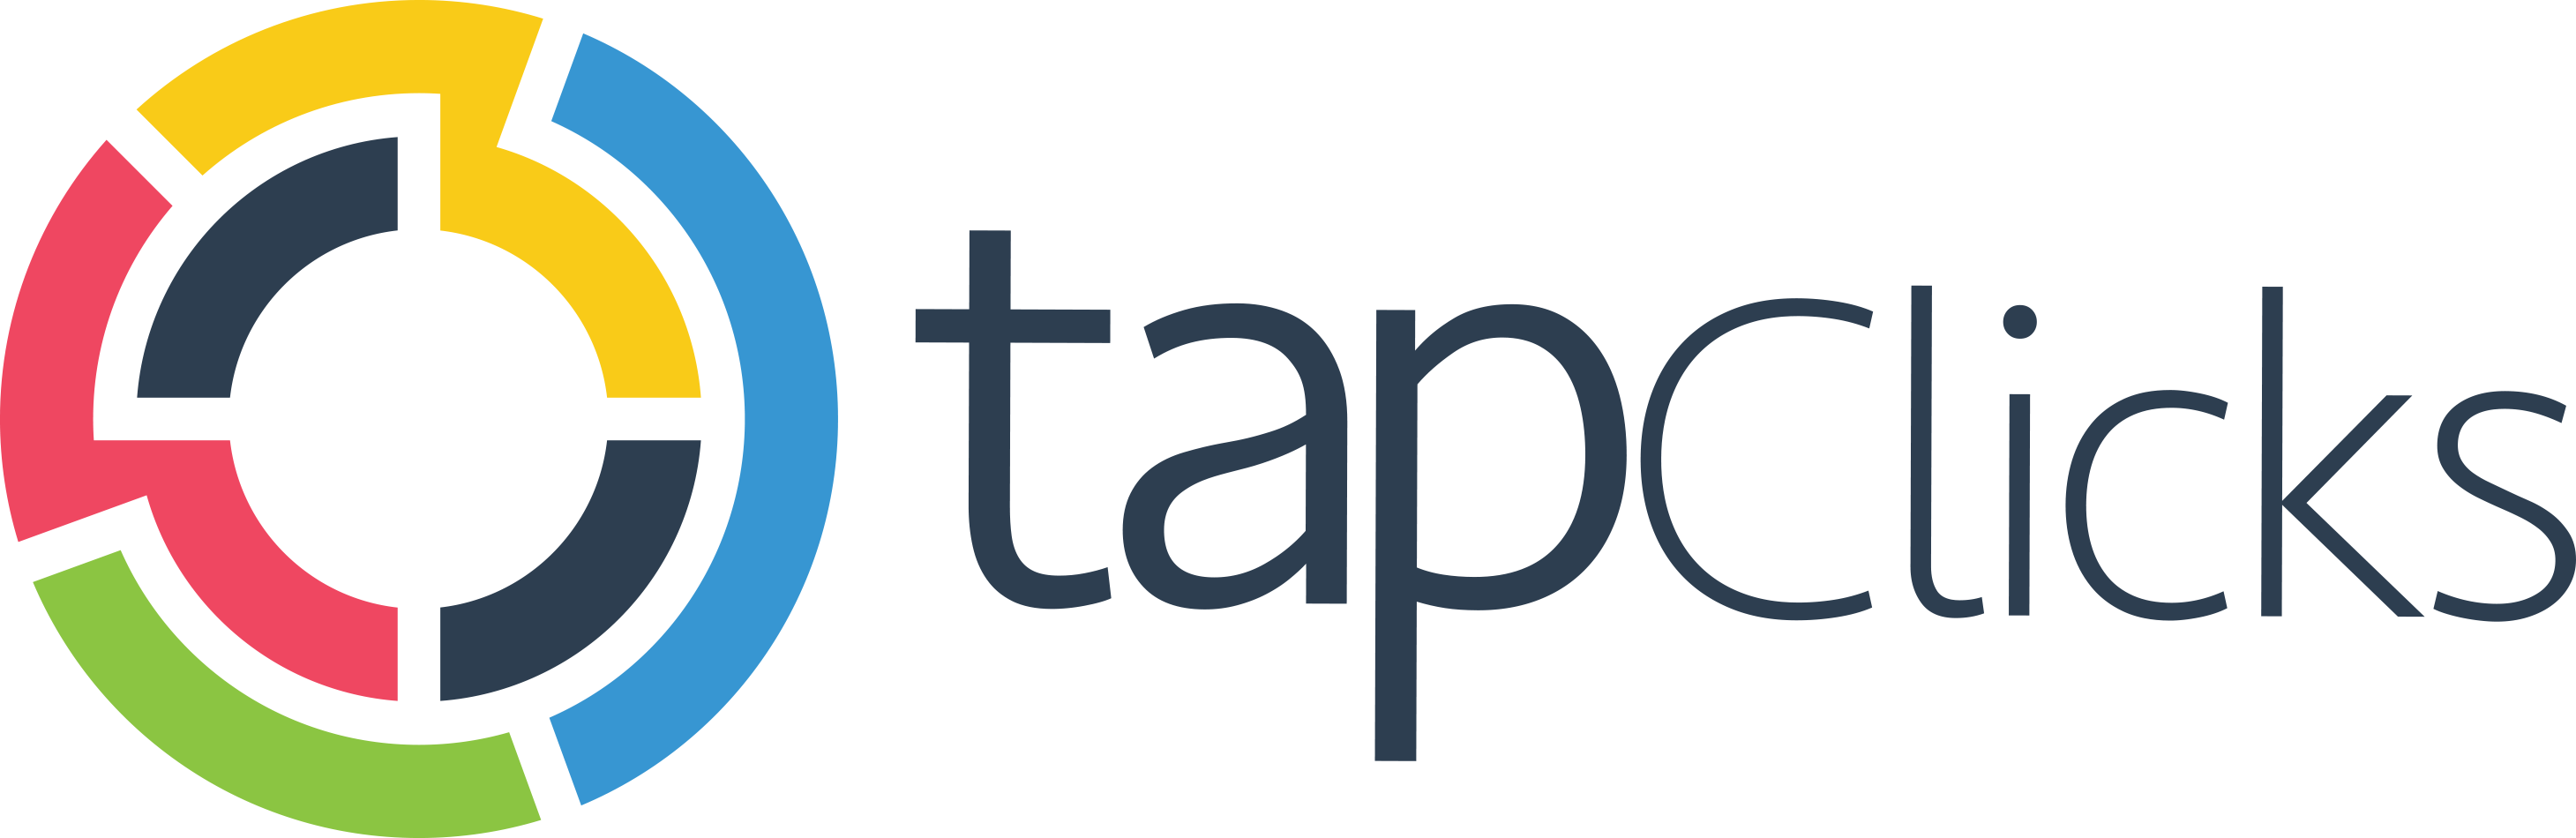 marketing data reporting - tapclicks